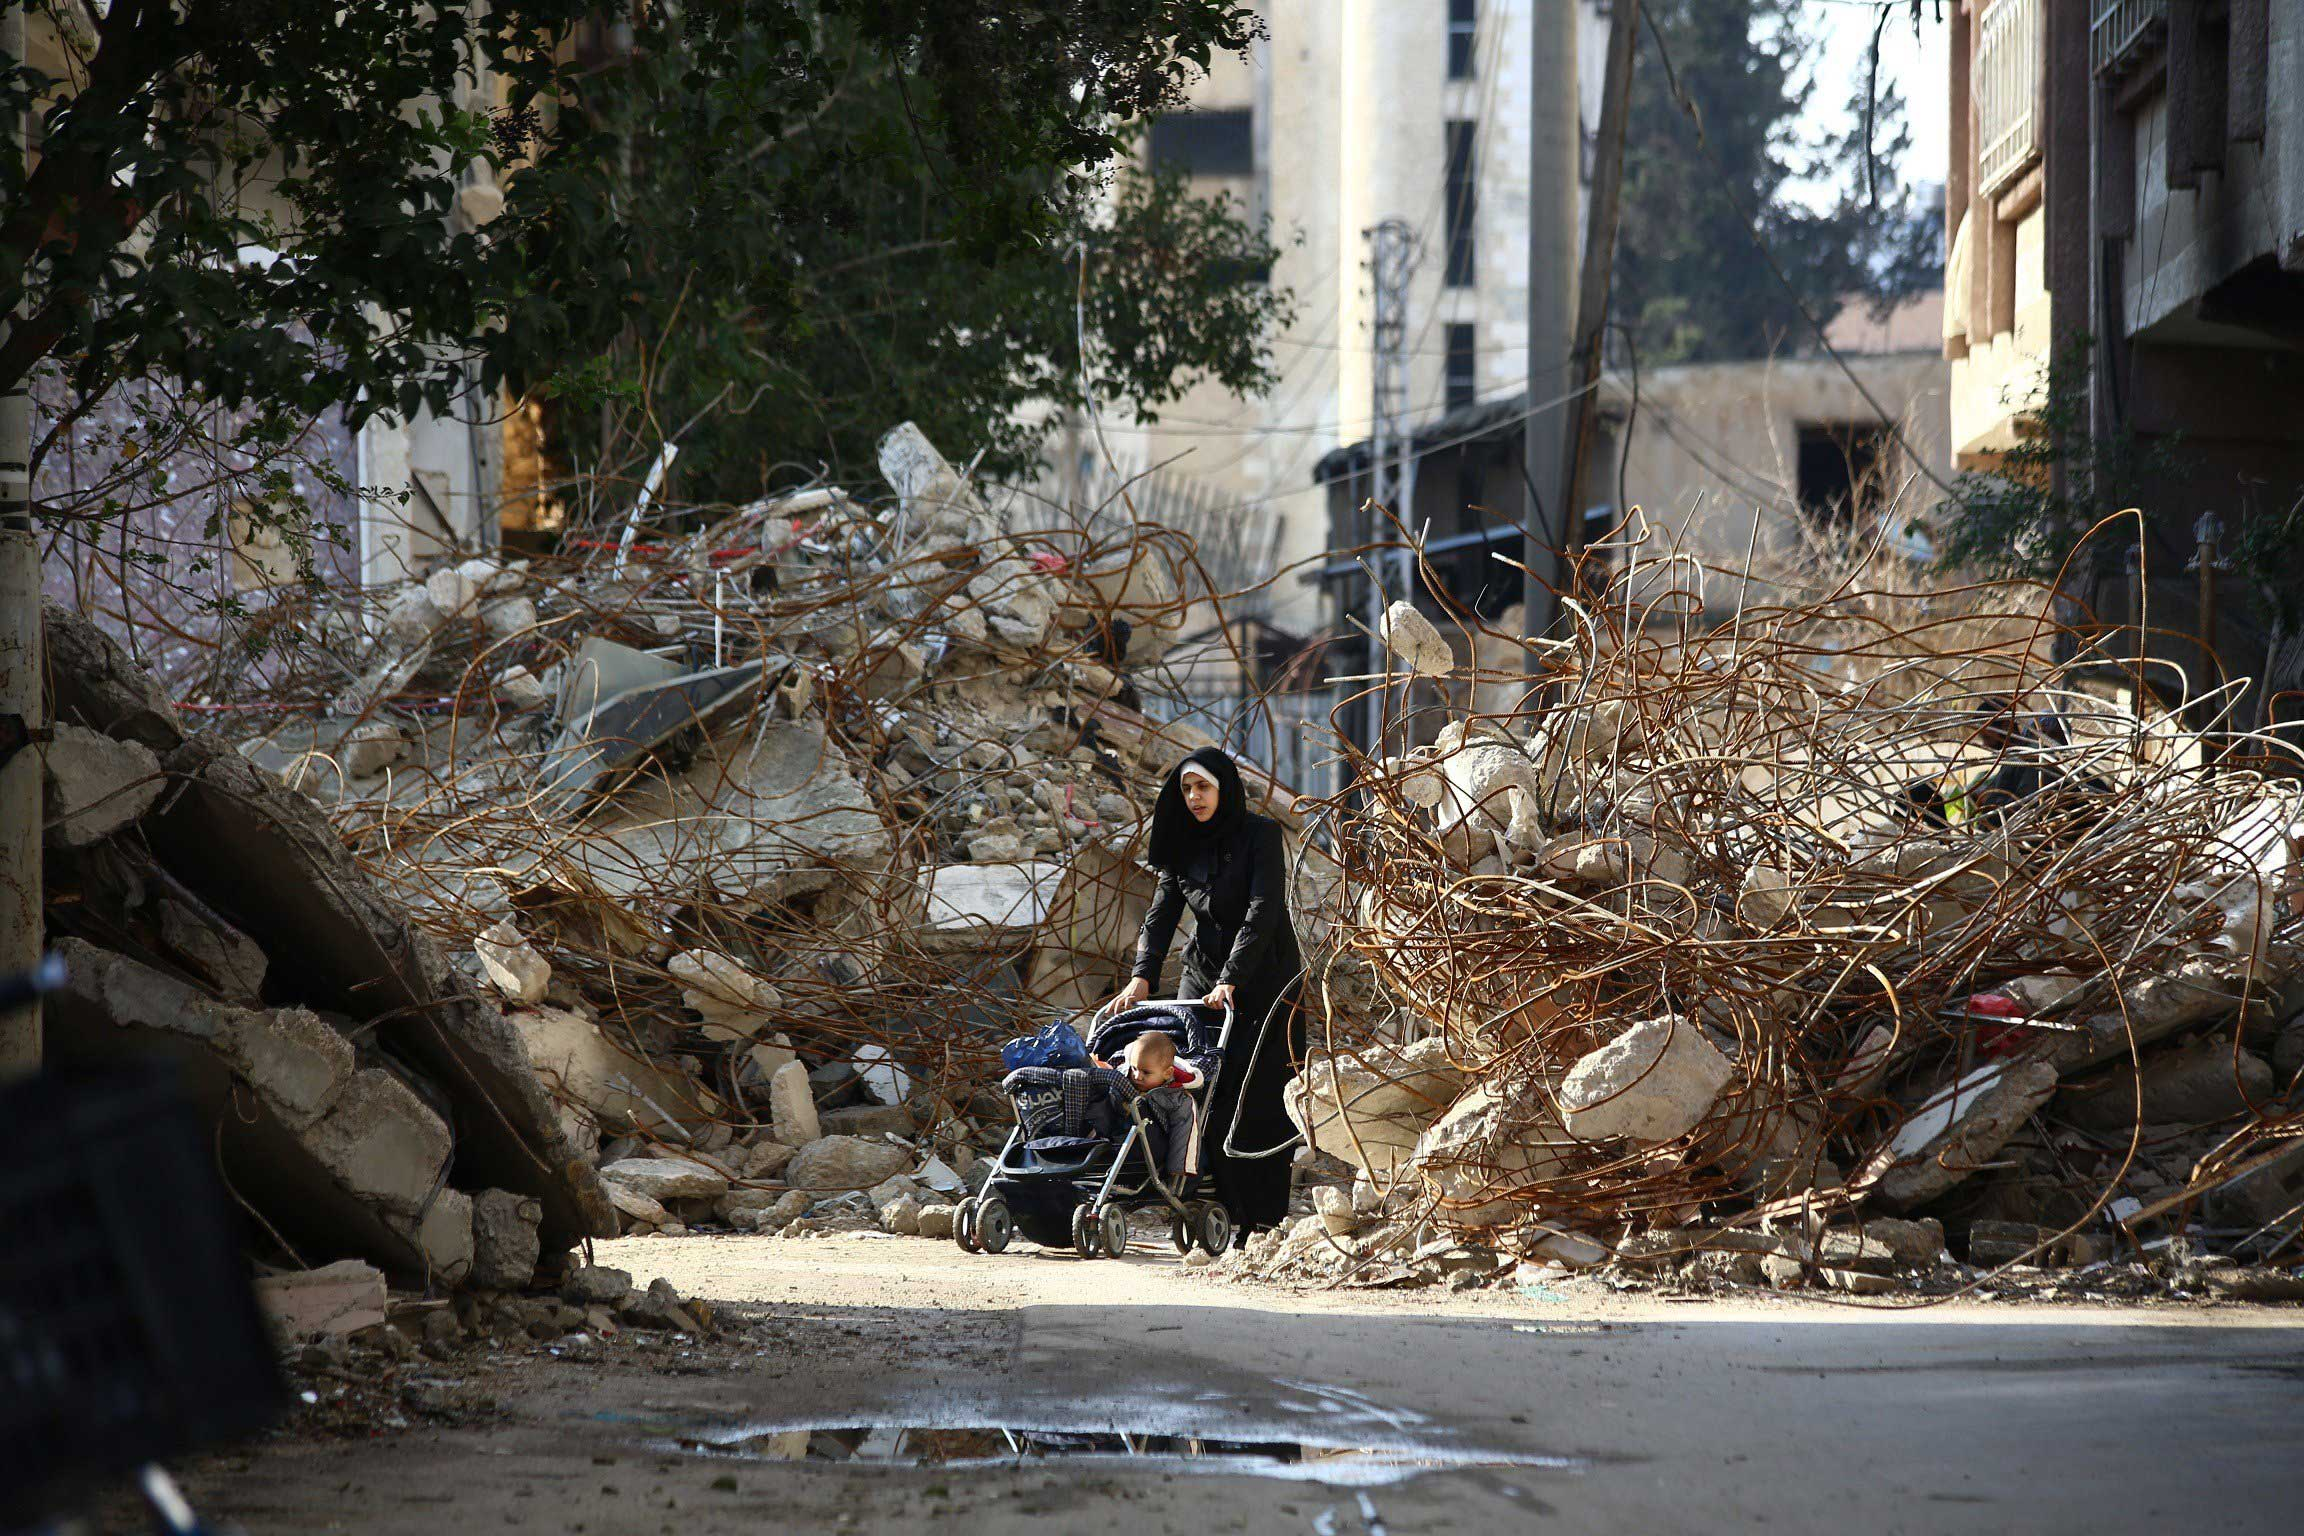 Dec. 13, 2014. A woman walks pushing a pram between the rubble of destroyed buildings in the besieged rebel bastion of Douma, Syria.